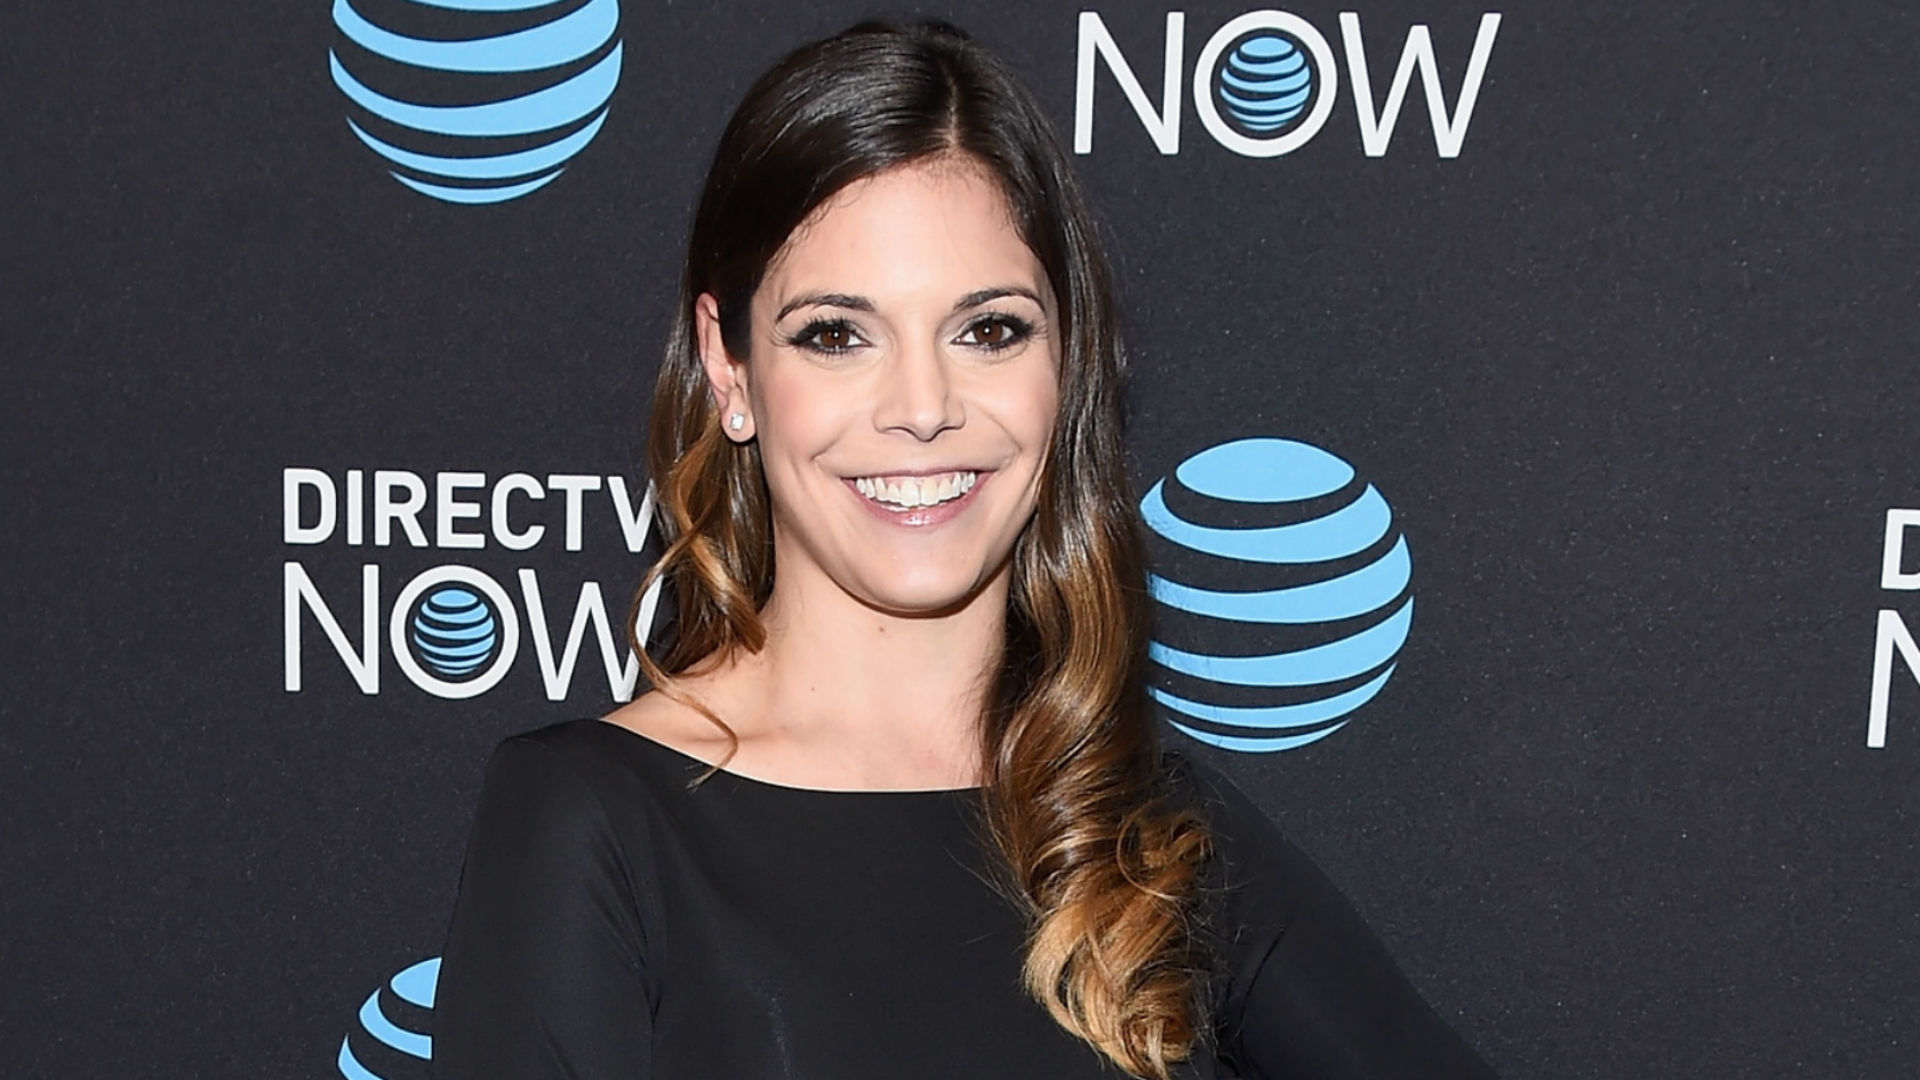 ESPN Hires Emmy-winning Sports Personality and Host Katie Nolan